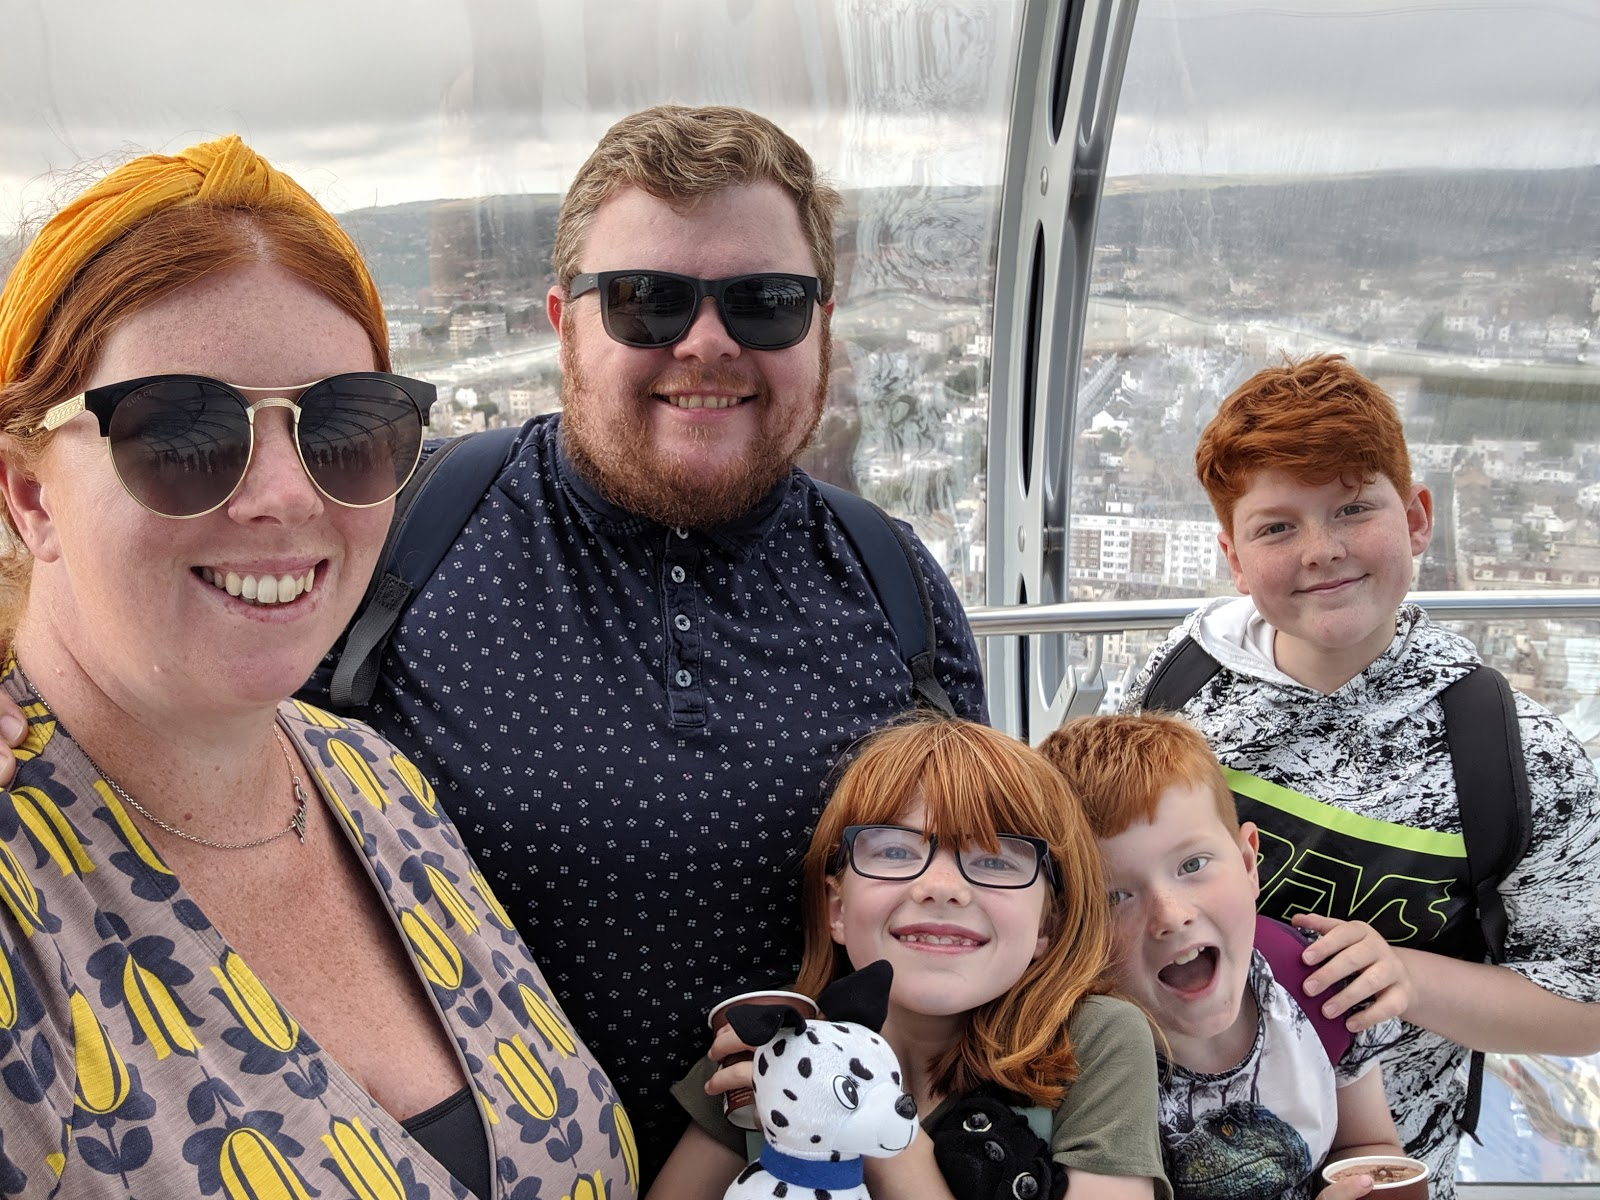 11 Top Tips for Visiting Brighton with Kids  - British Airways i360 selfie